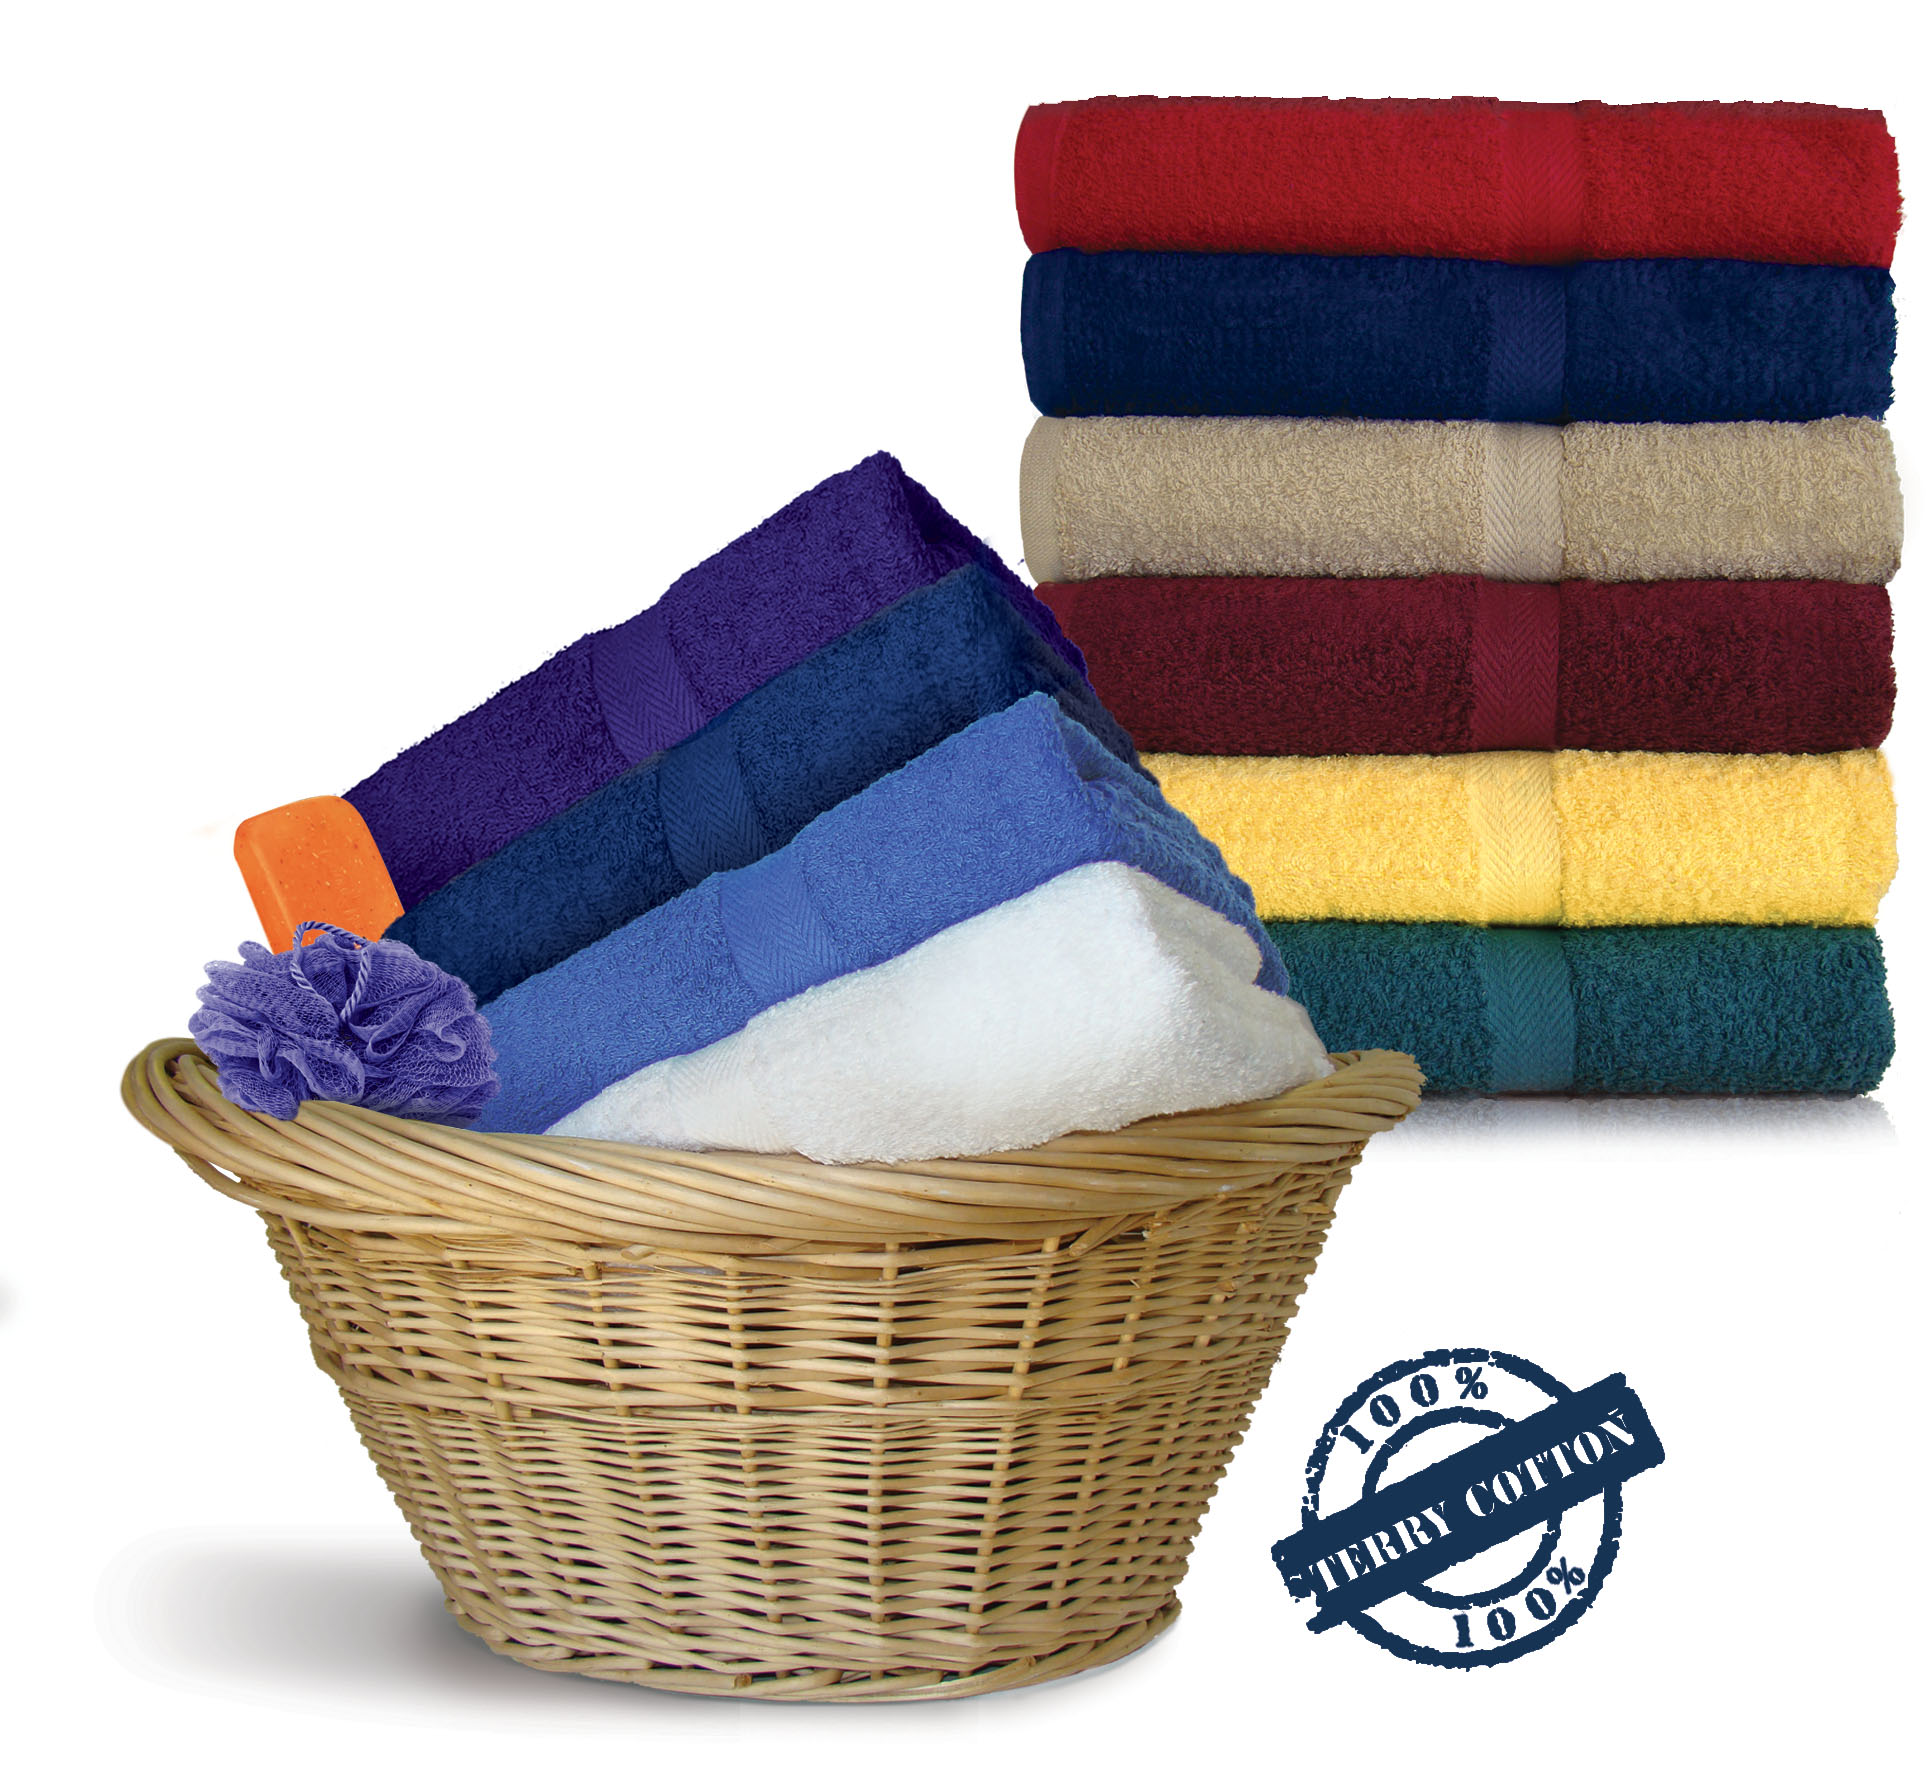 30x52 Shuttleless Loom Bath Towels by Royal Comfort, 14.0 Lbs per dz, Combed Cotton.(Assorted Colors) 24 per case.